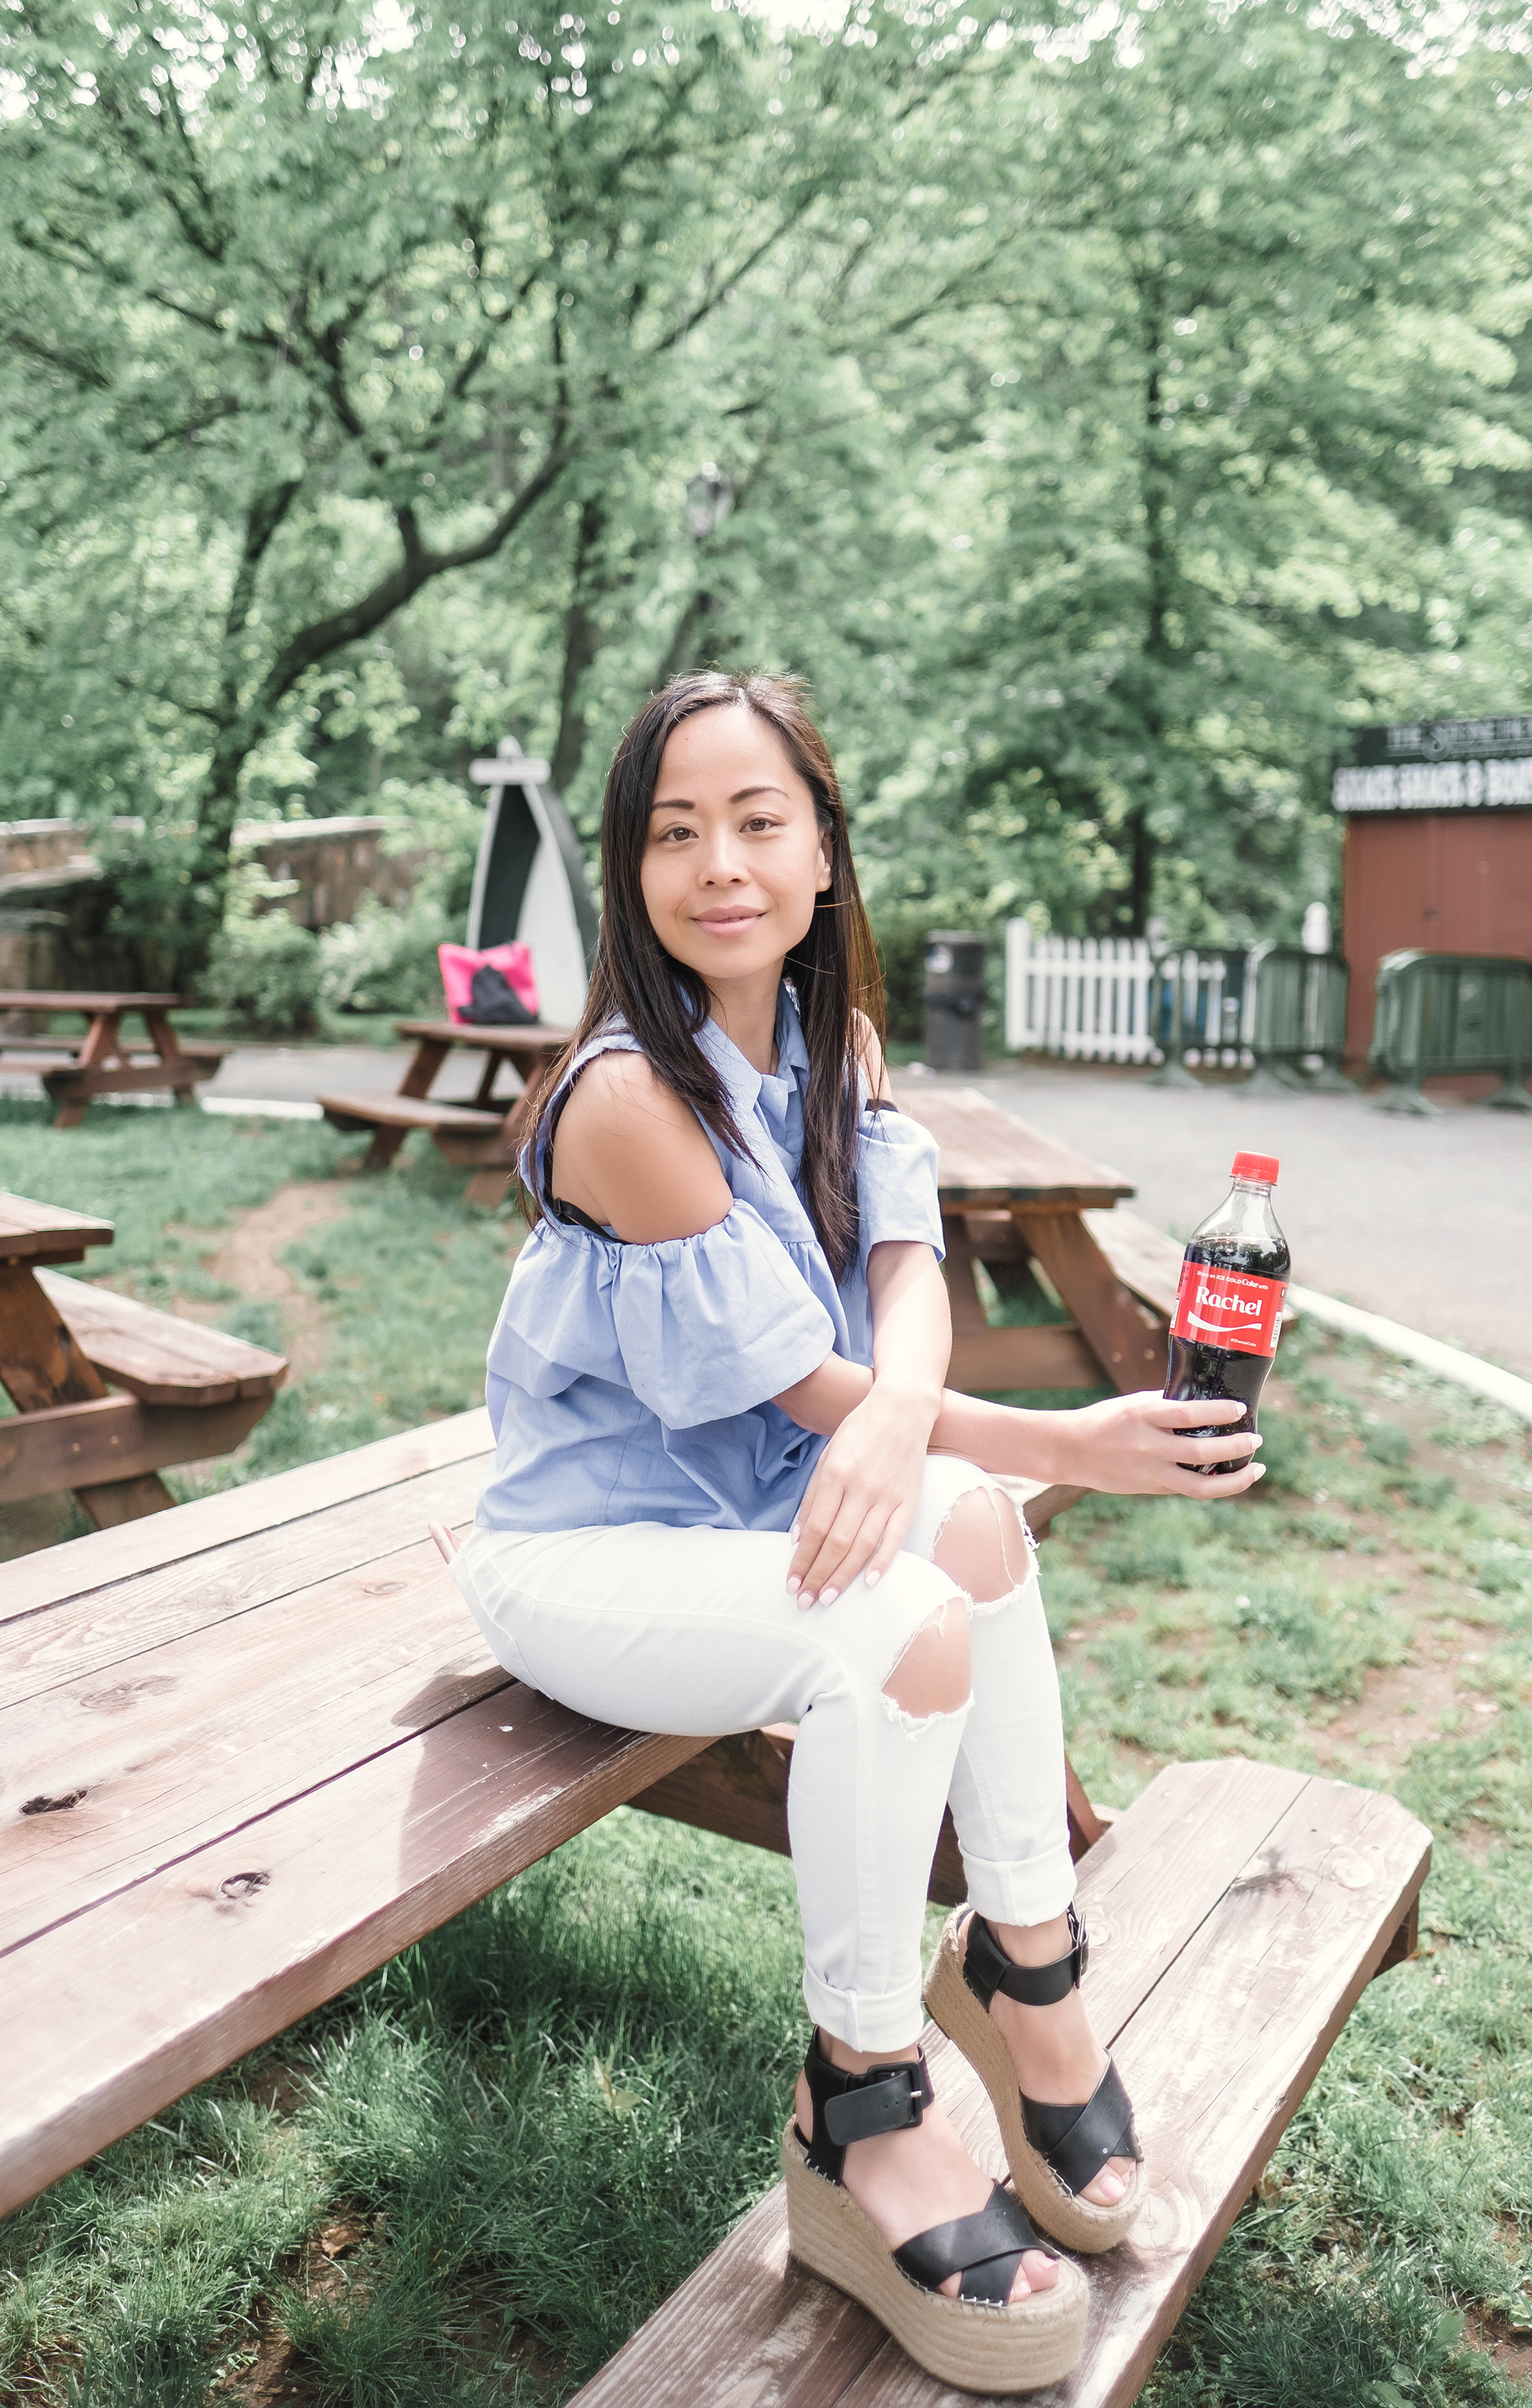 At  Cloves Lakes Park  and enjoying a beautiful day. Remember when  Coke  had those names on those bottles? I found one!